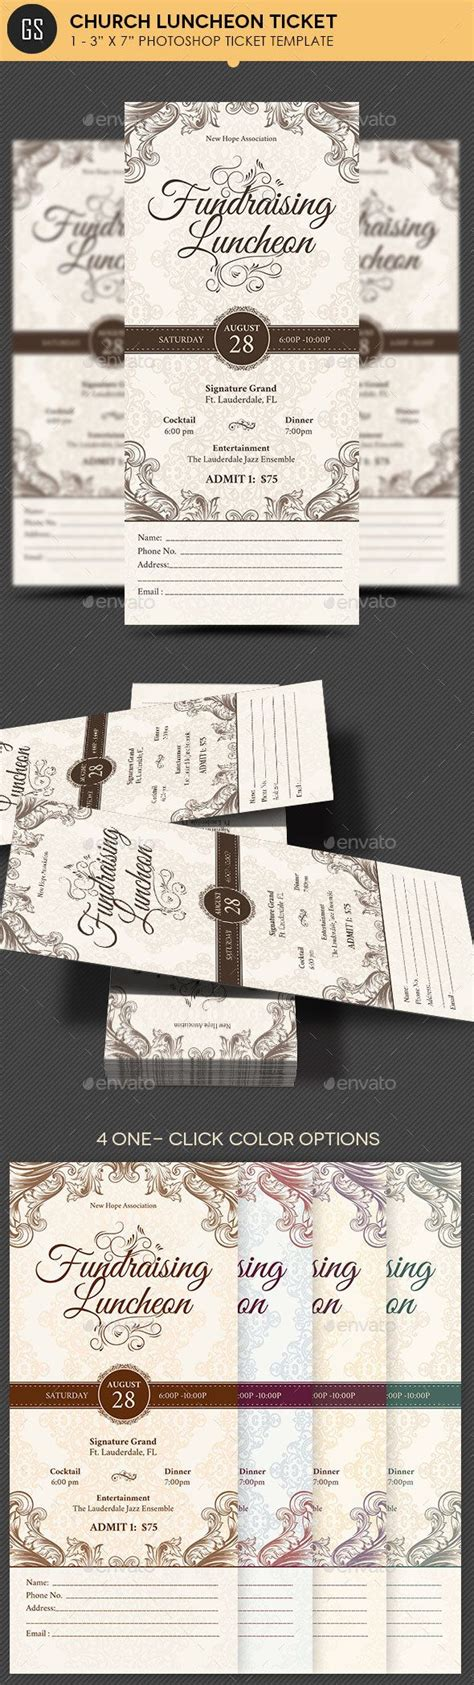 17 best ideas about ticket template on pinterest my pics